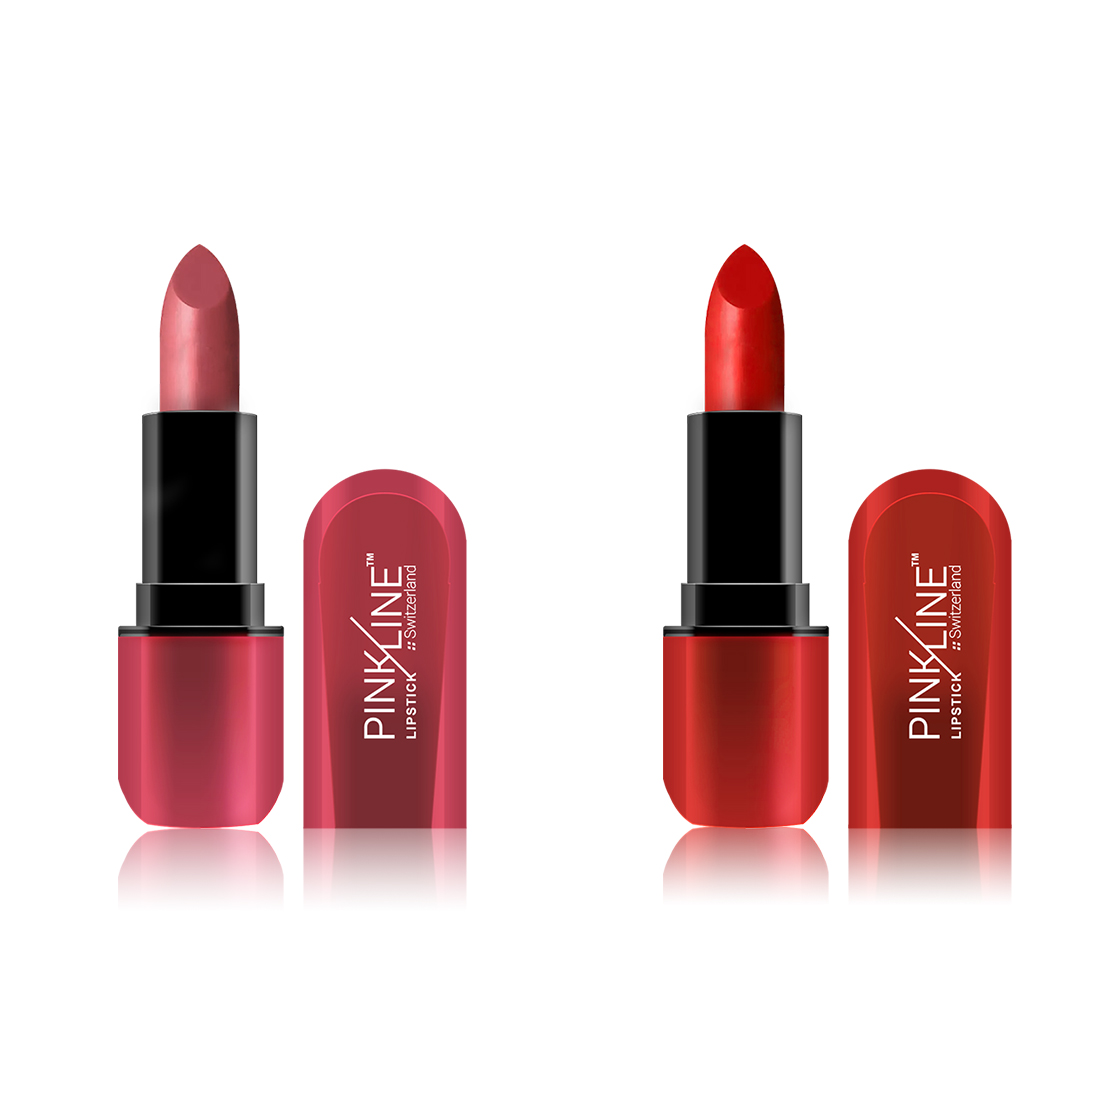 PINKLINE Matte Lipstick 7.6gm,PL1053-11-12 Lip And Juicy (Lip And Juicy, 46 g)